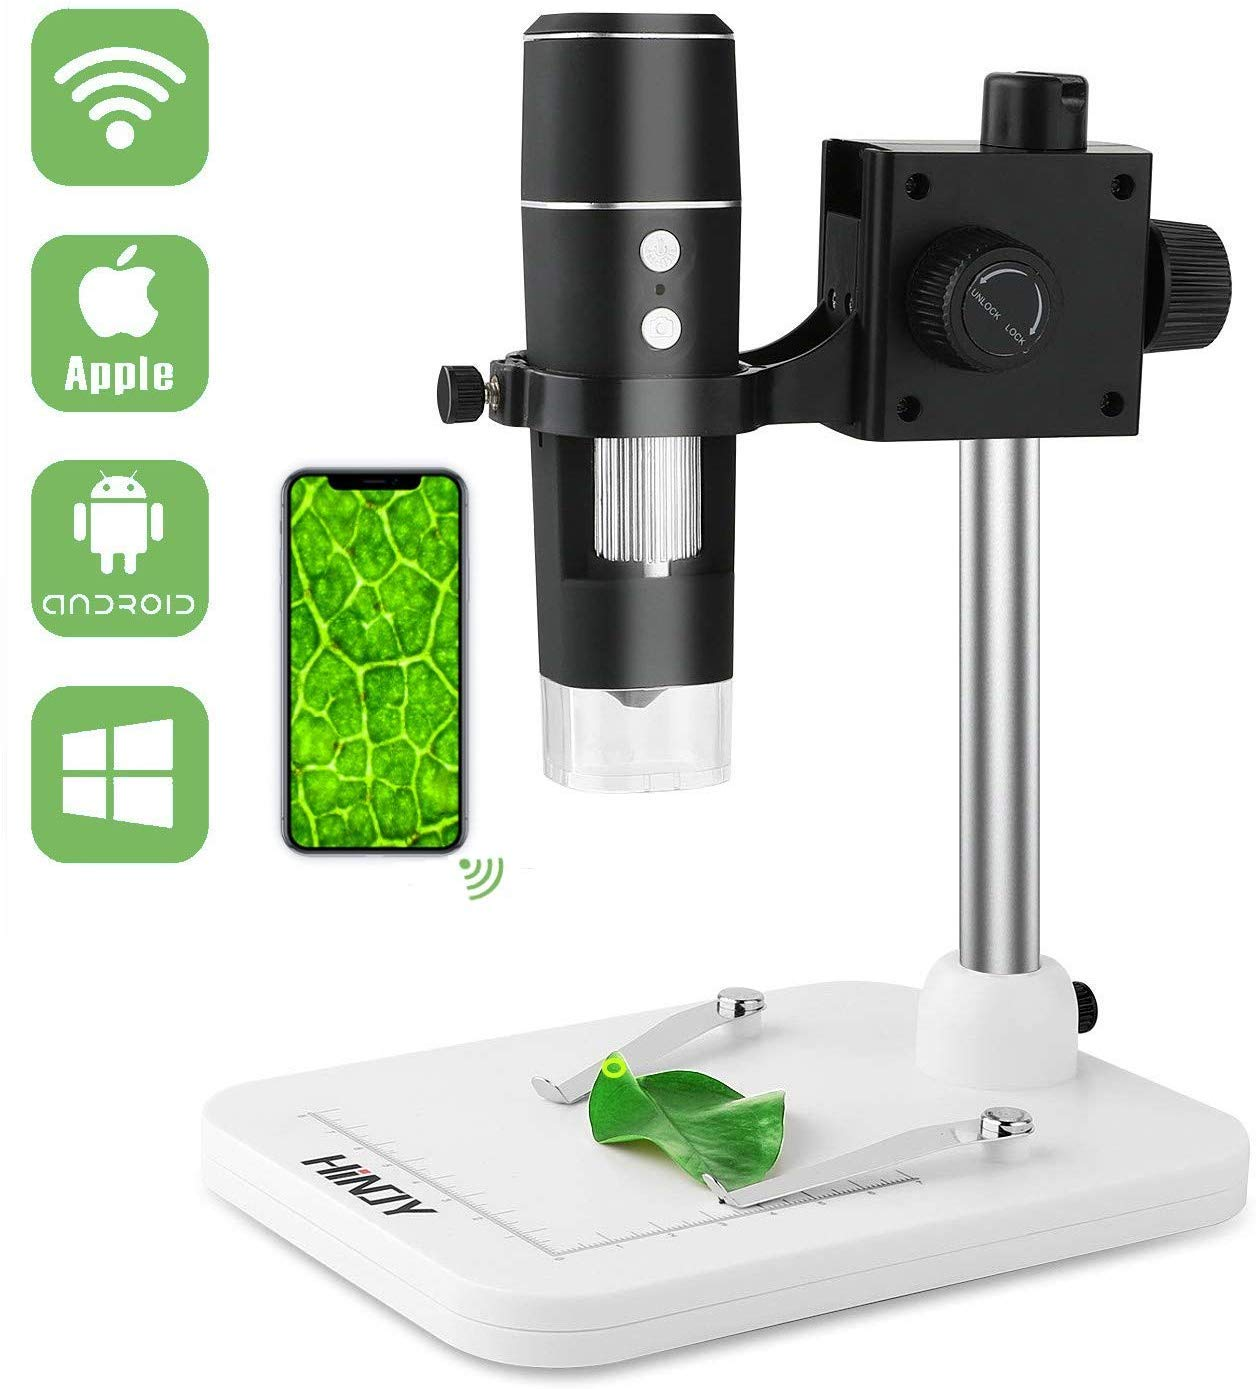 HINOY WiFi Digital Microscope, Portable Wireless USB Microscope Camera, 50x to 1000x Magnification Kids Handheld Microscope Endoscope for iPhone, Android, Windows & MAC Devices by HINOY